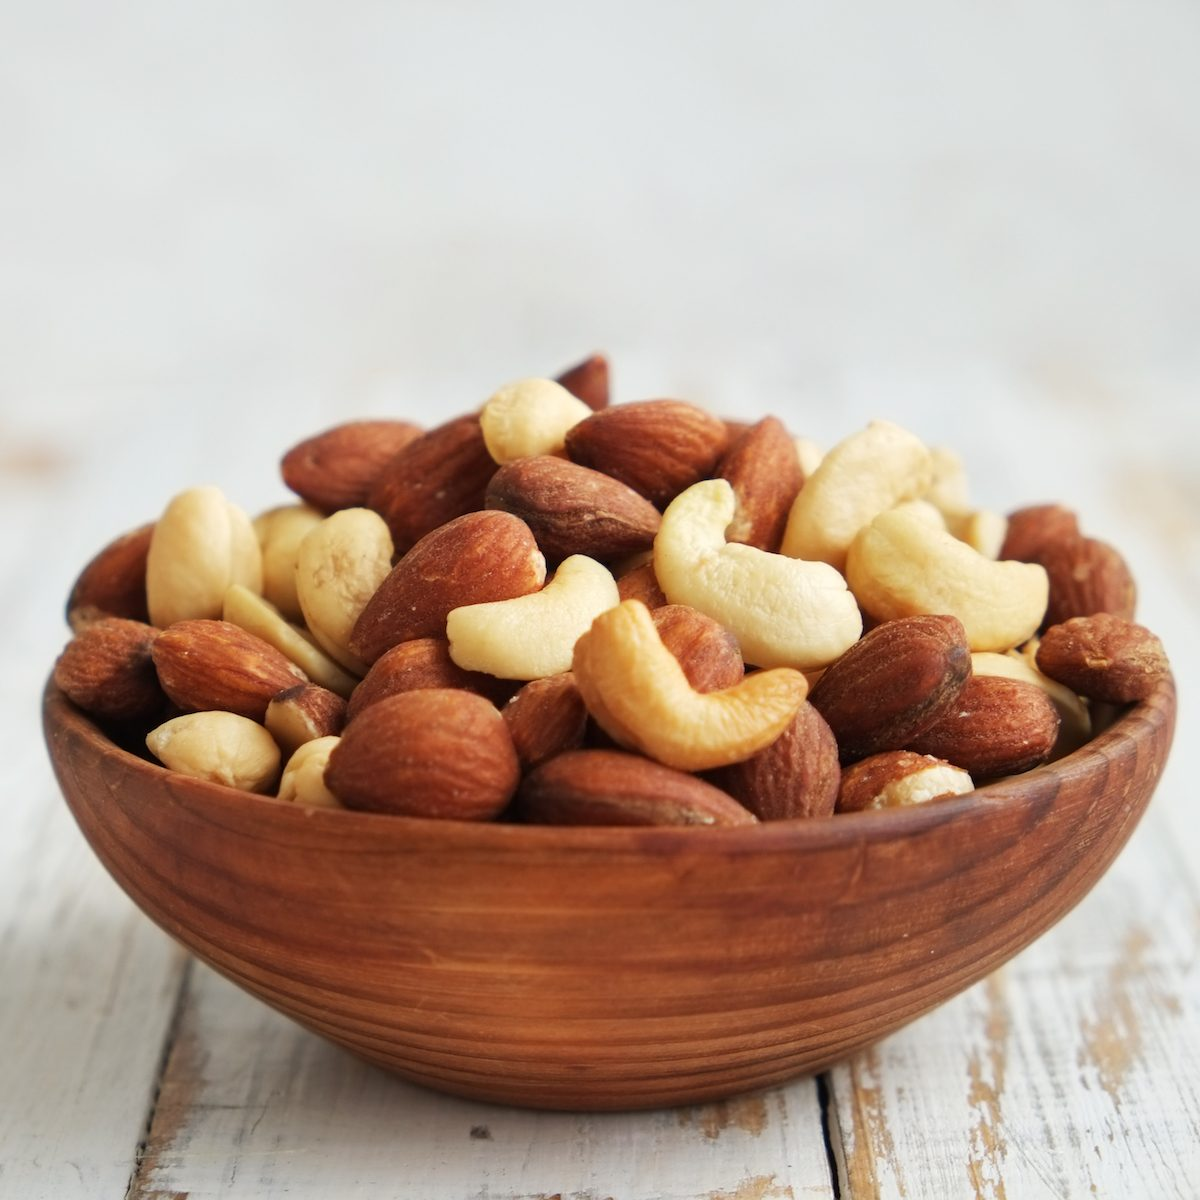 Mixed nuts in a bowl on a white wooden background.